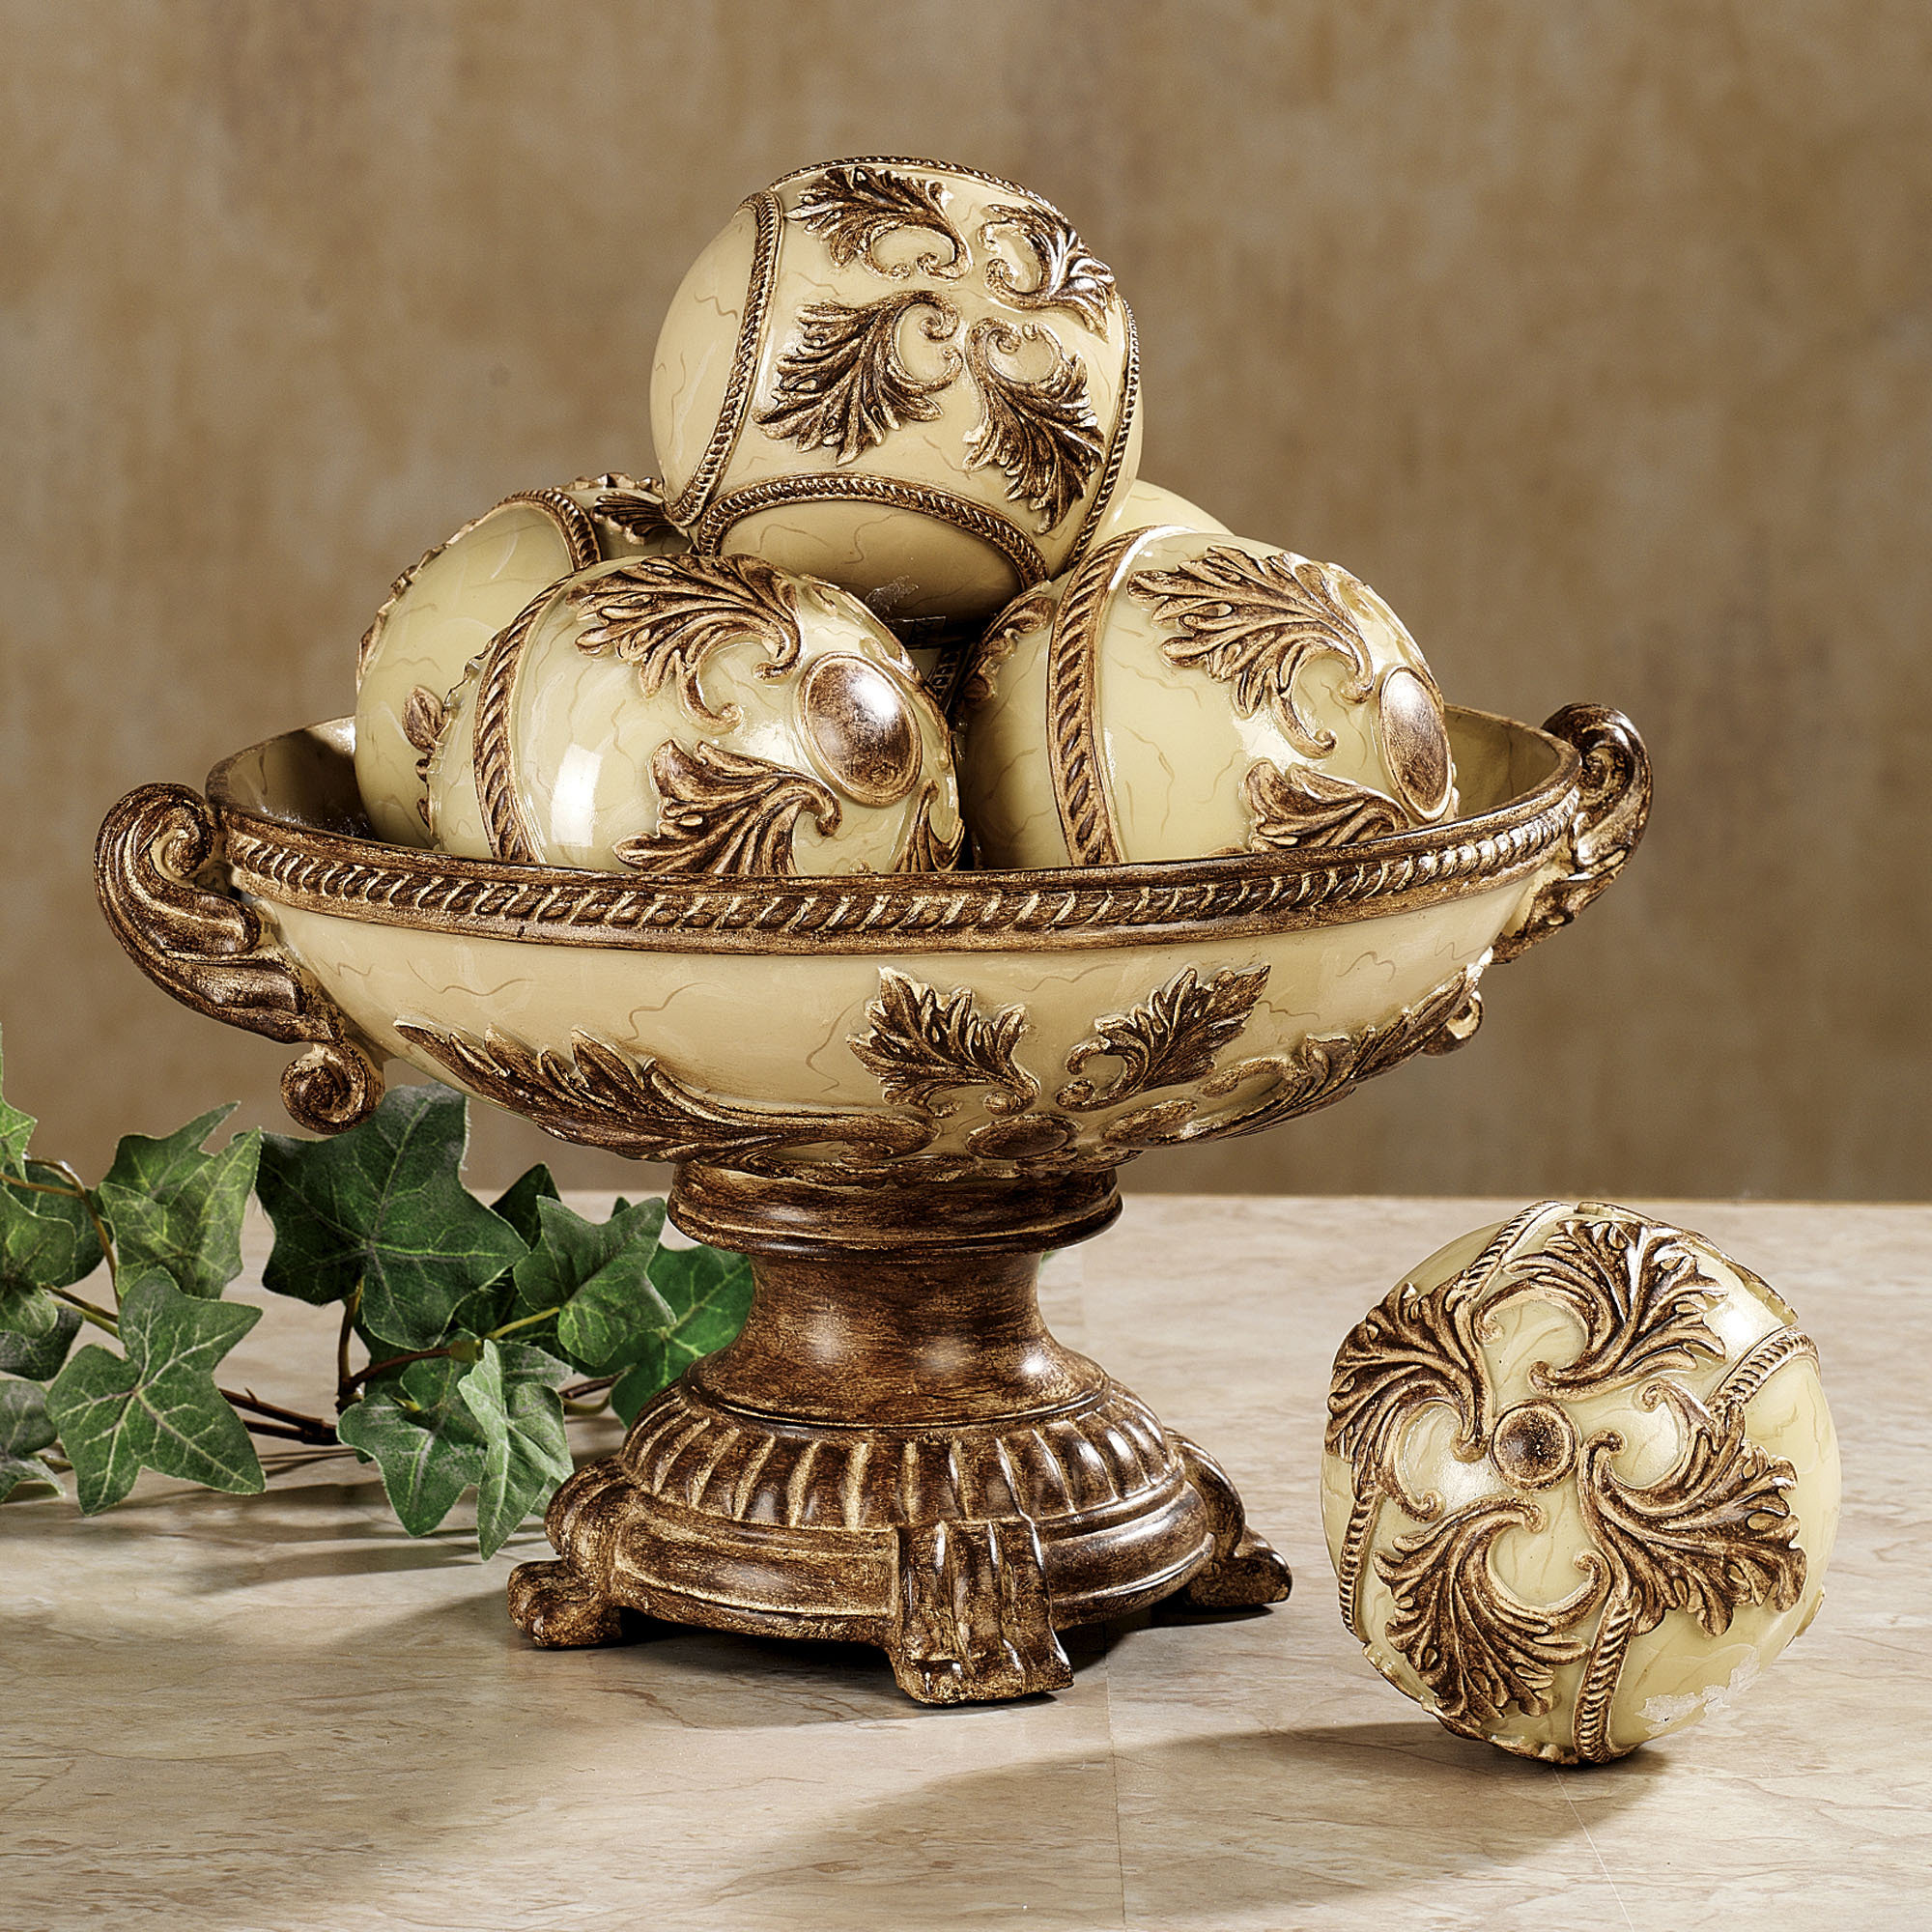 elegant decorative orbs in golden with floral ornament for table accessories ideas